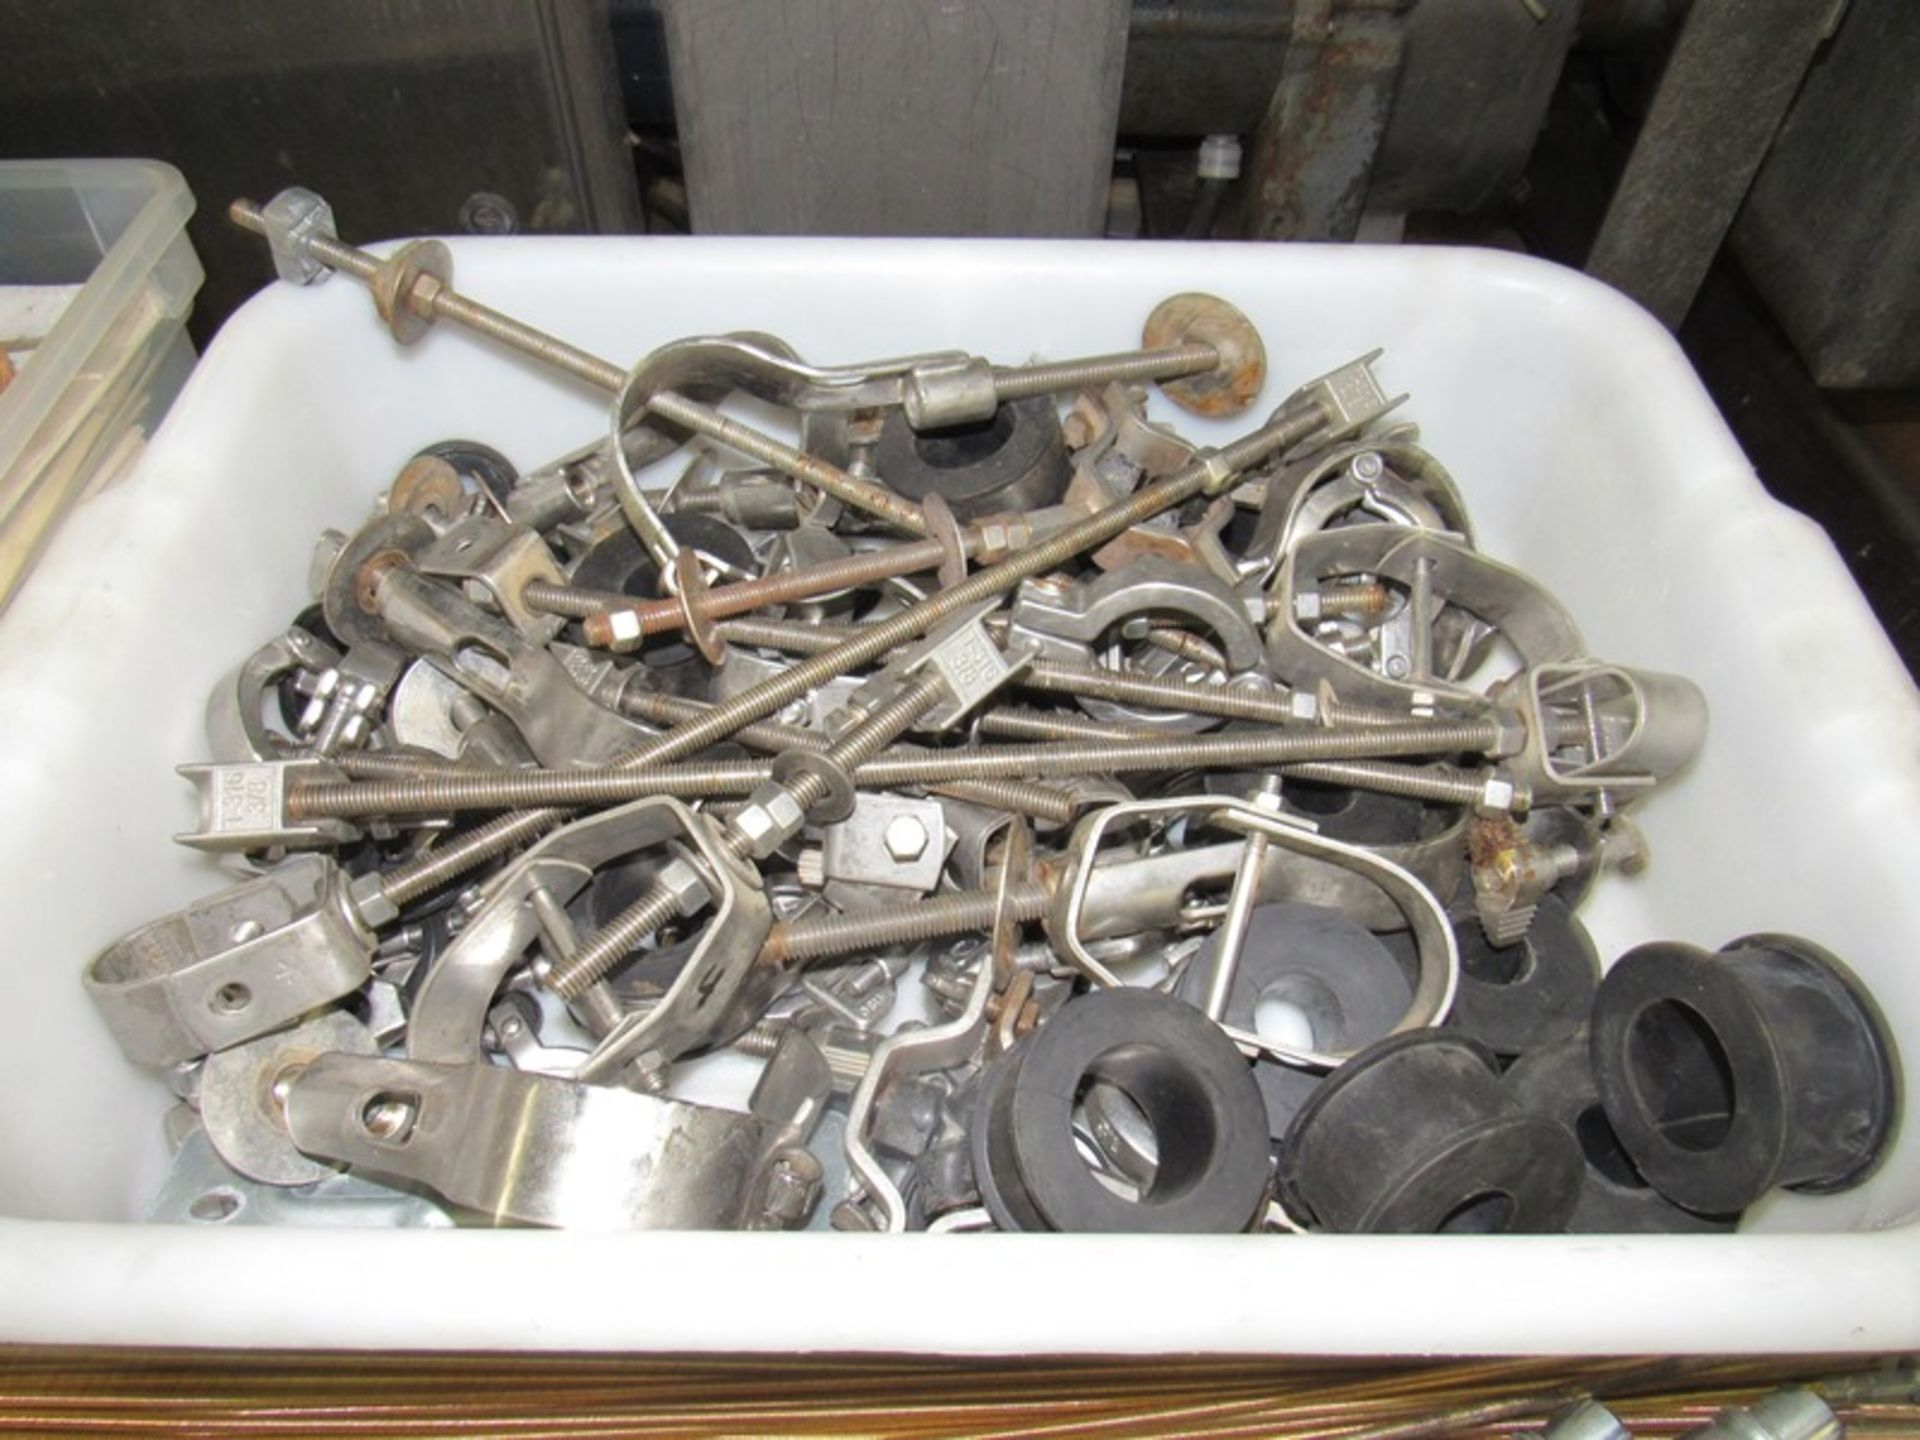 Lot 57 - Lot Bettcher Mdl. UN84 Parts, hoses, knife parts, blades, hangers, sharpeners, etc.;*** All Funds